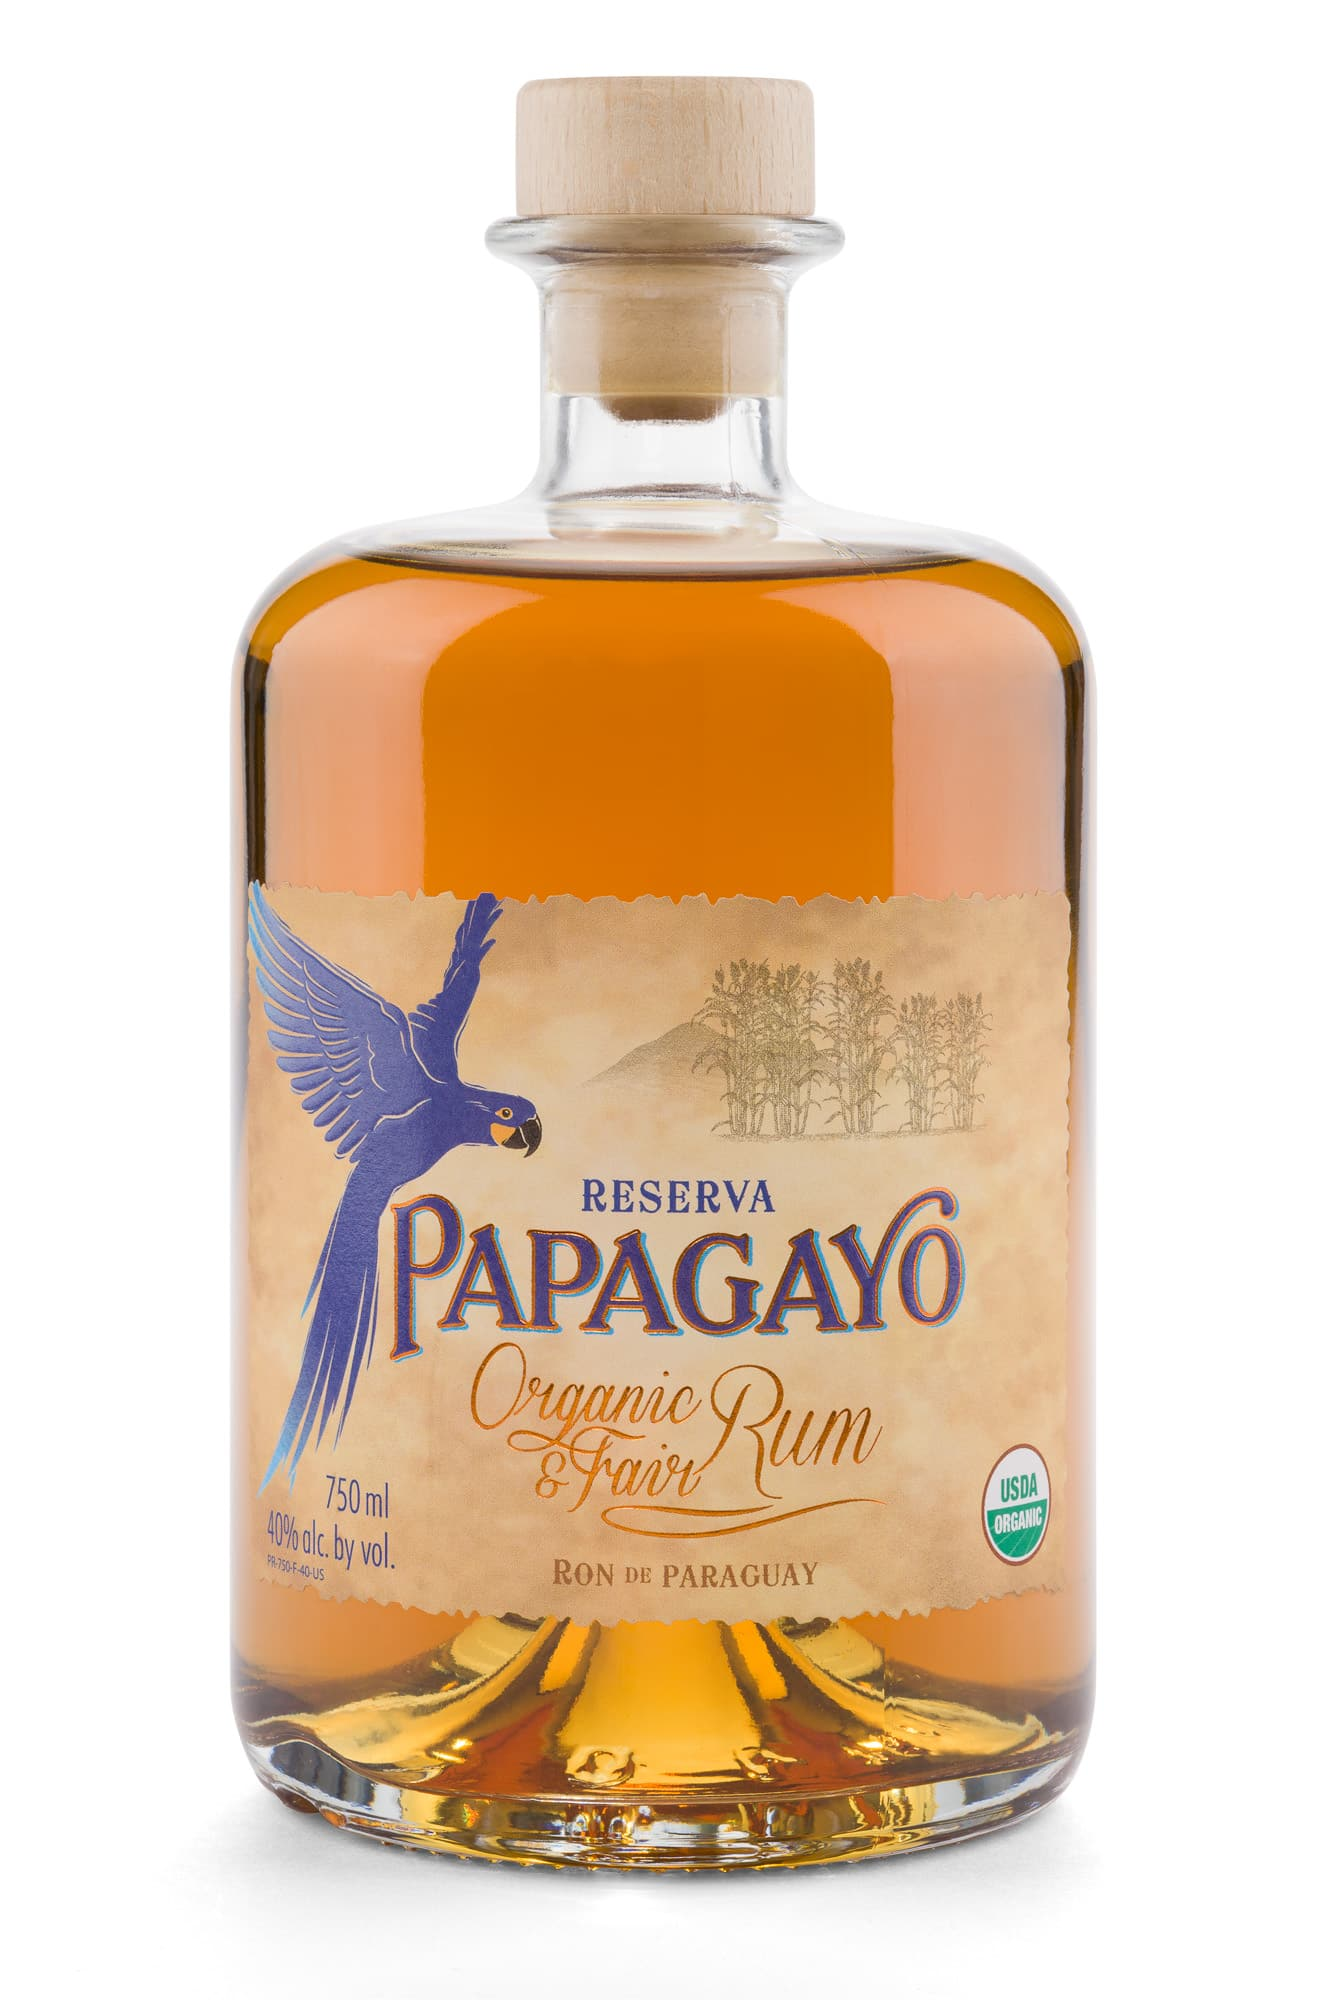 Papagayo Rum Product Cut Out with transparent shadow